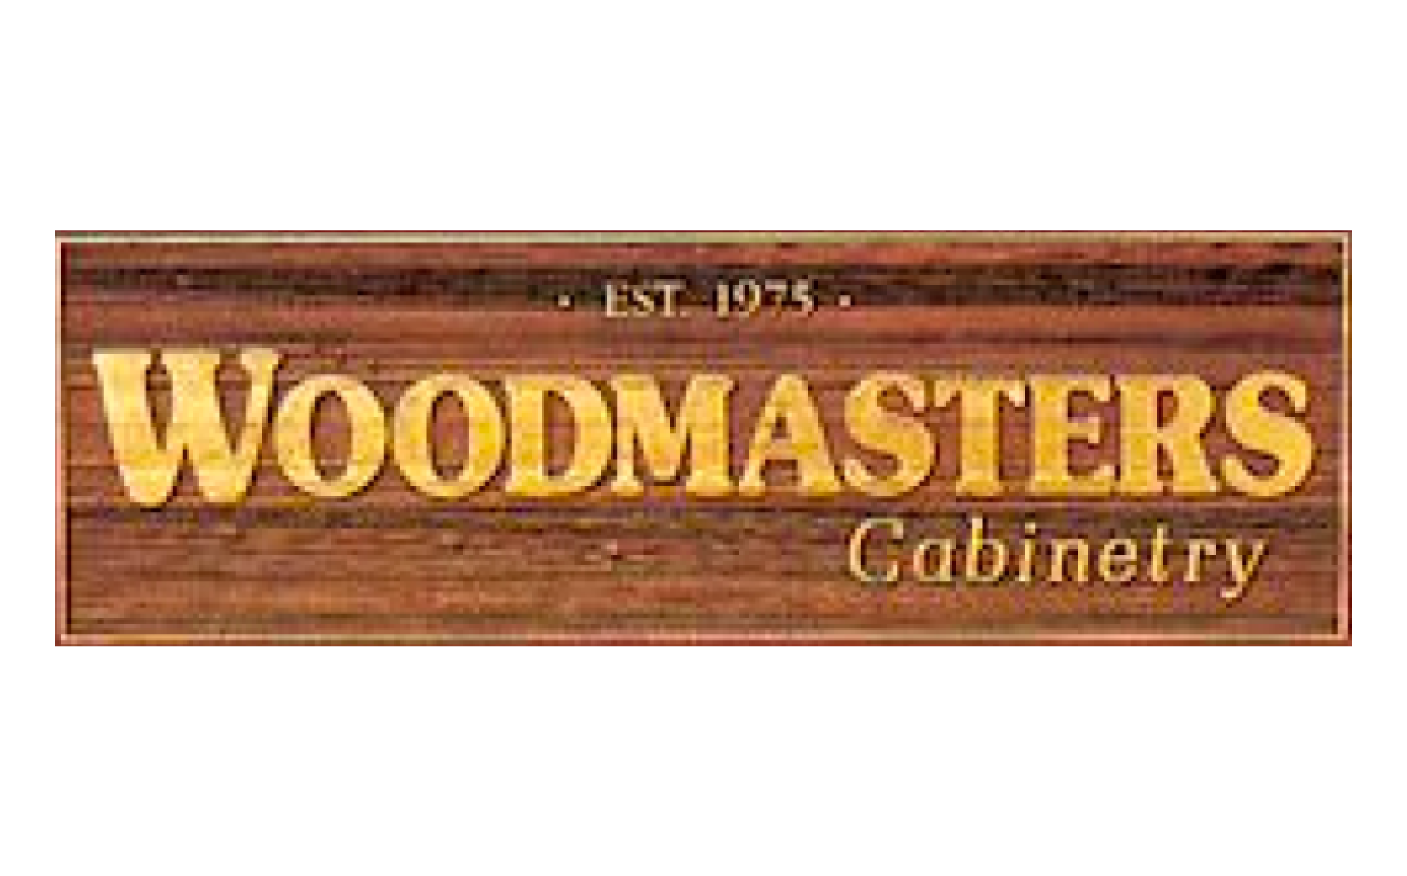 Woodmasters Cabinetry